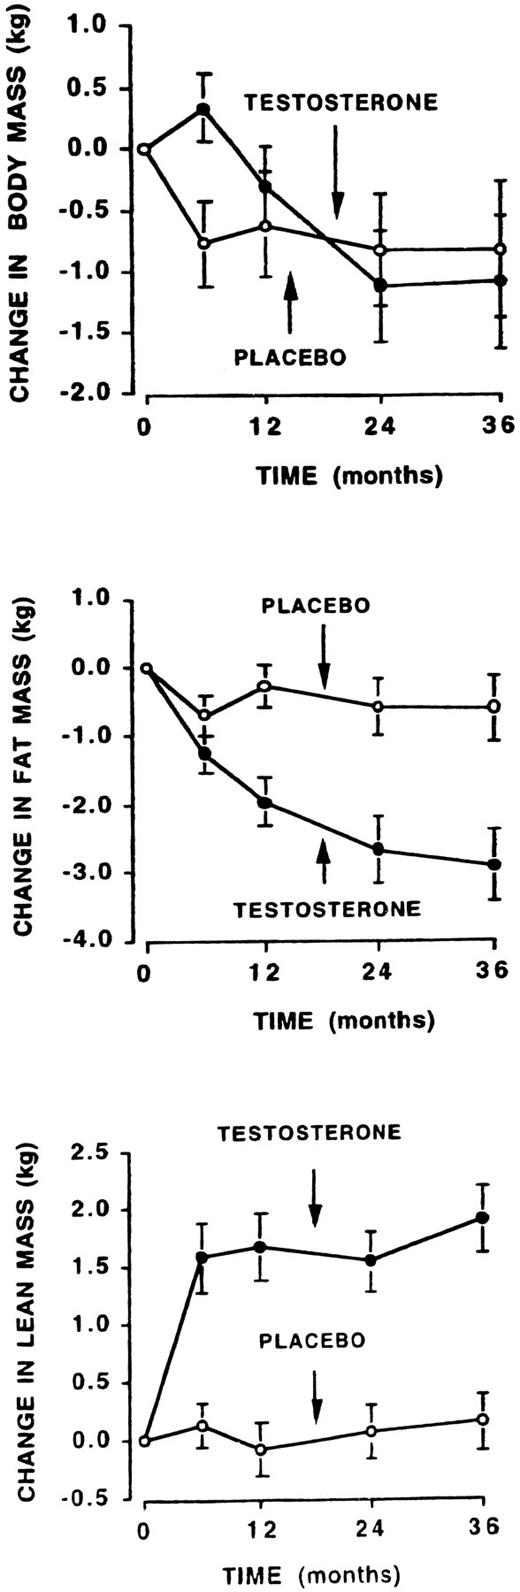 Effect Of Testosterone Treatment On Body Composition And Muscle Ken 1 12 By Strom Mean Se Change From Baseline In Total Mass Fat